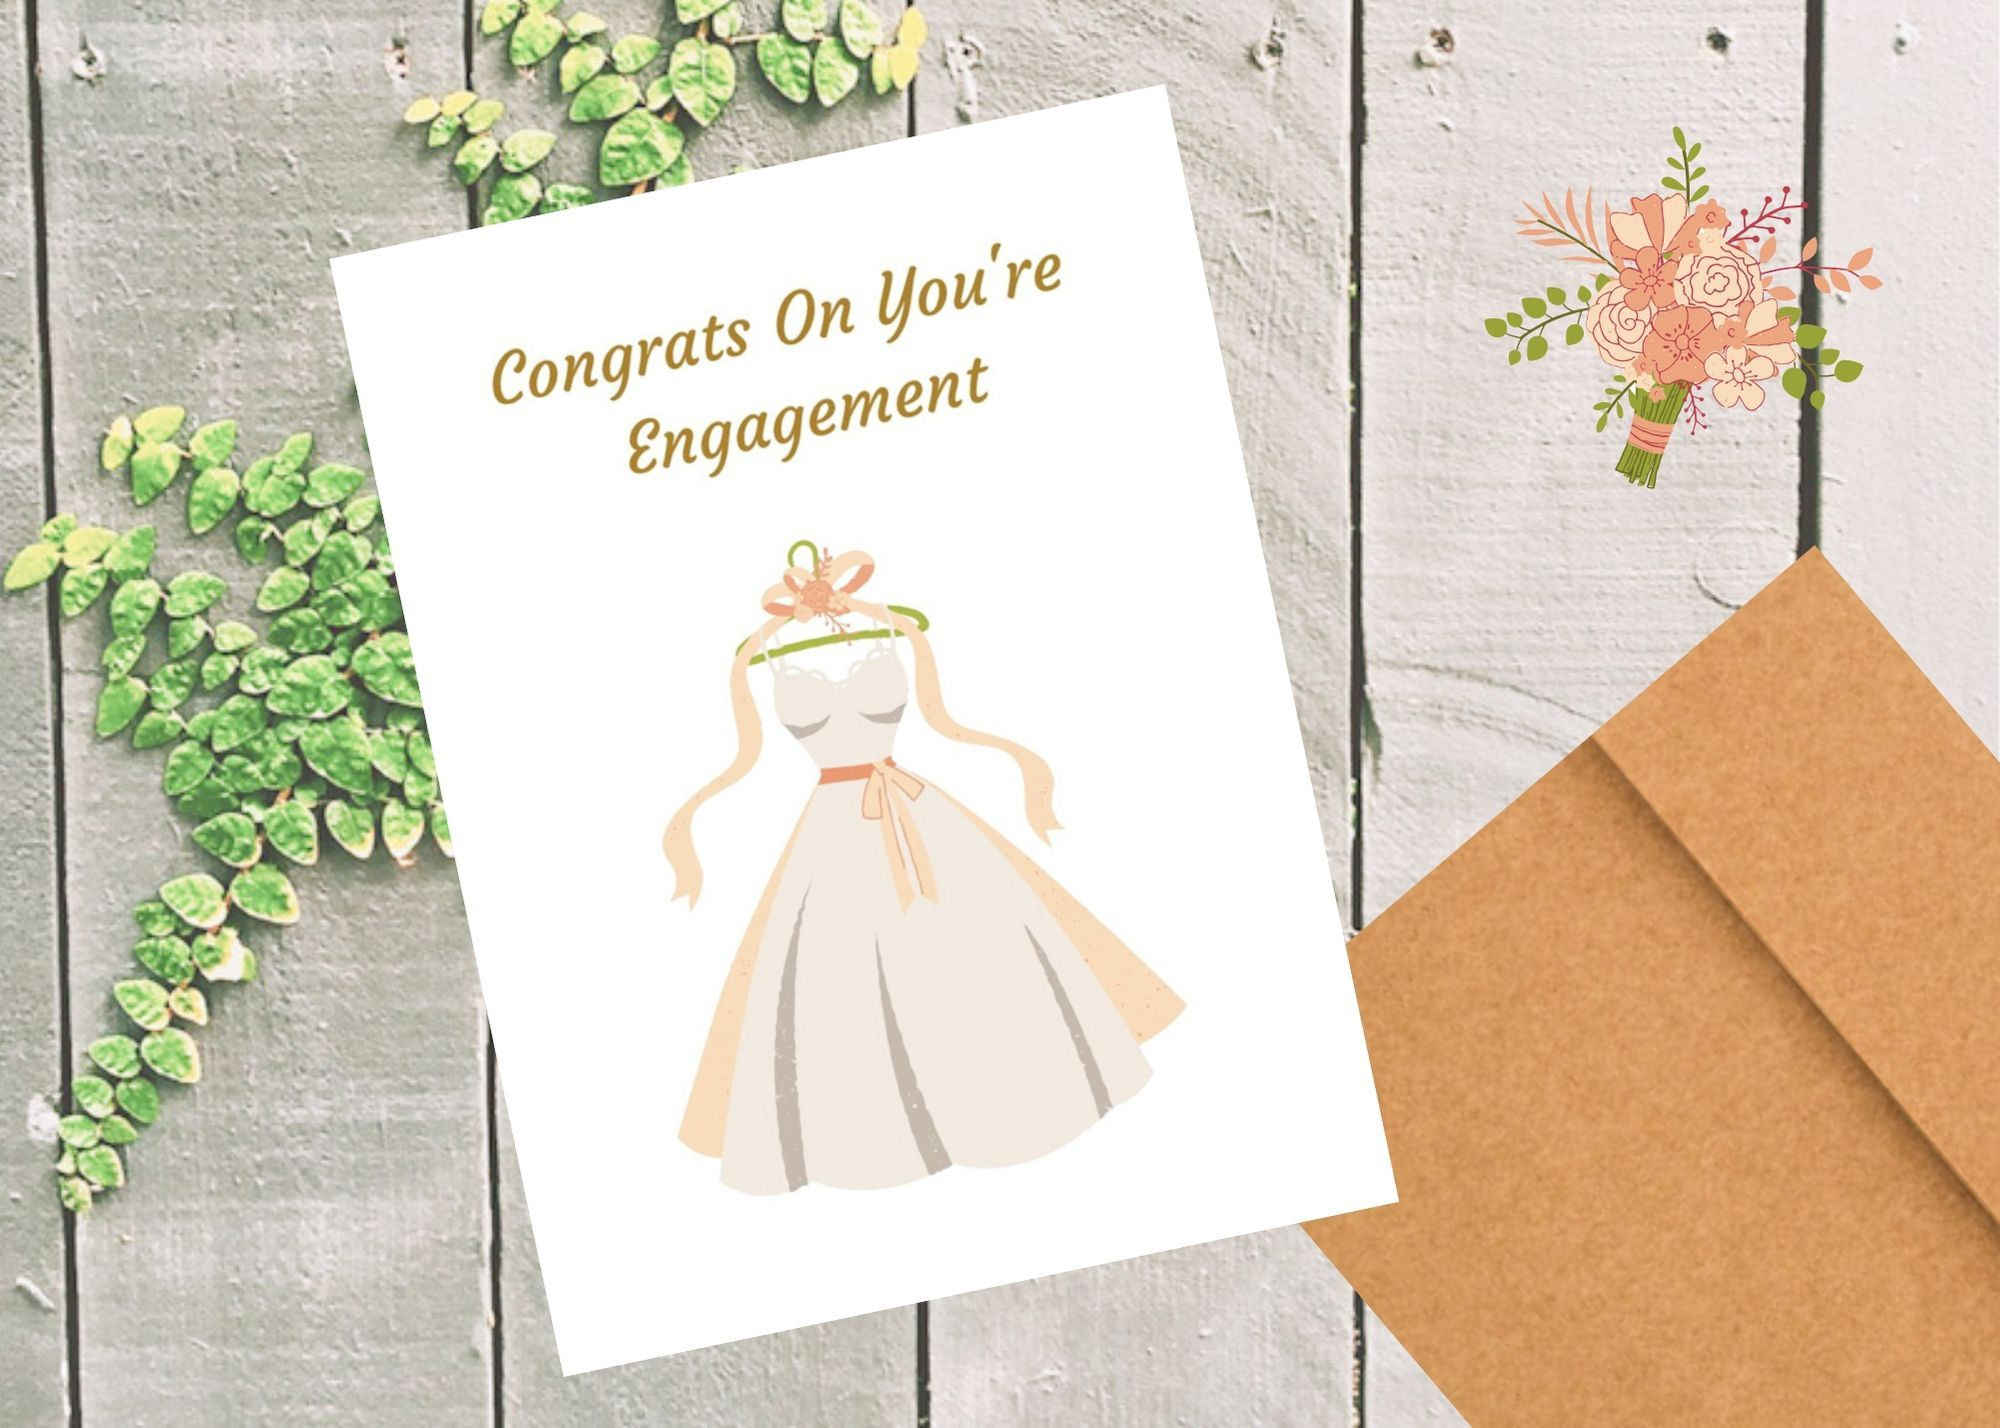 Engagement Card Elegant Engagement Card Foldable Engagement Greeting Card Congratulations In 2020 Engagement Cards Anniversary Cards For Wife Wedding Greeting Cards